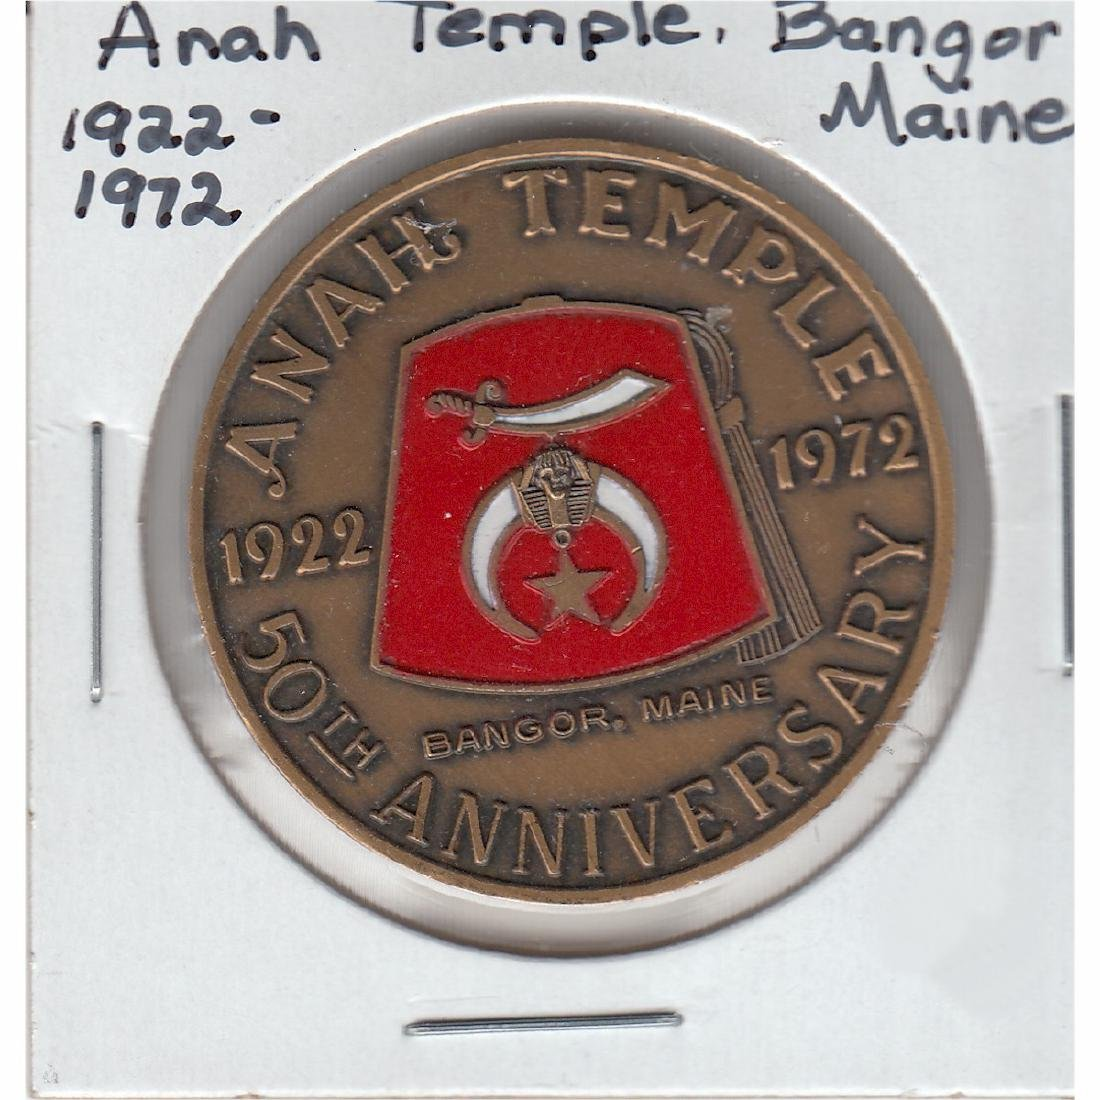 1922-1972 Anah Temple Bangor, Maine 50th Anniversary